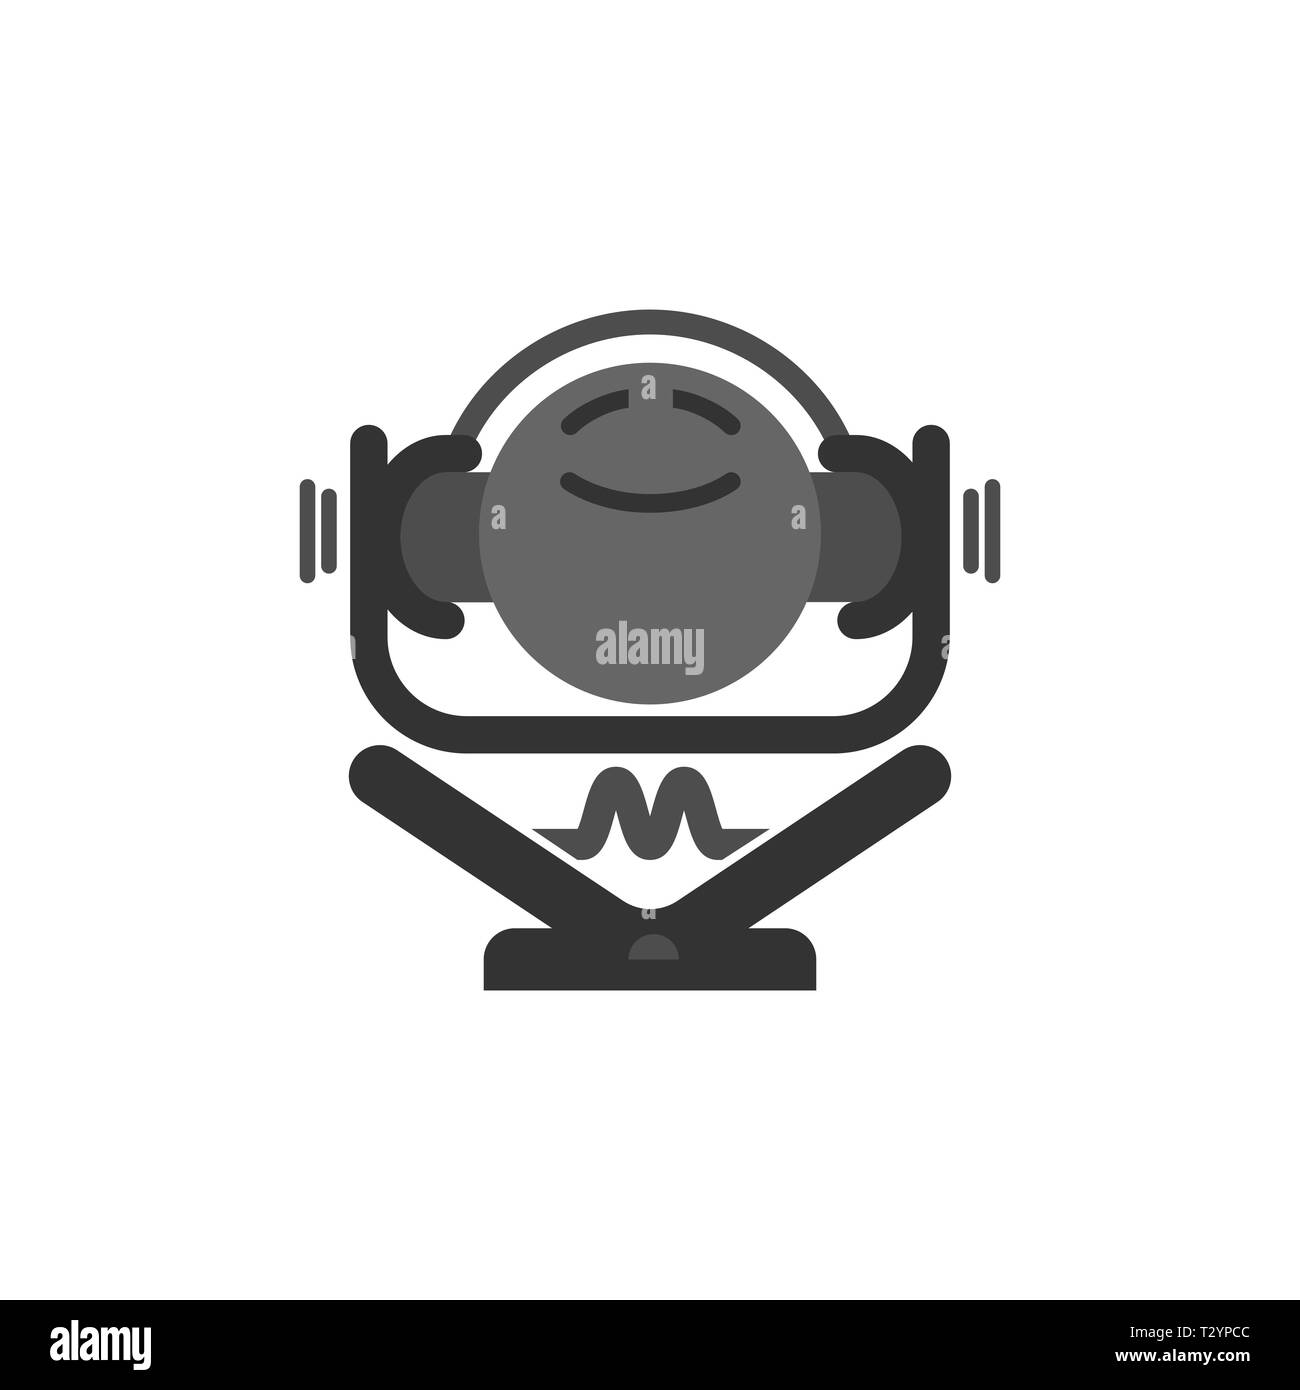 The logo shows a stylised music-lover that is sitting with crossed legs and listening to music. He is really happy and cheerful. - Stock Image